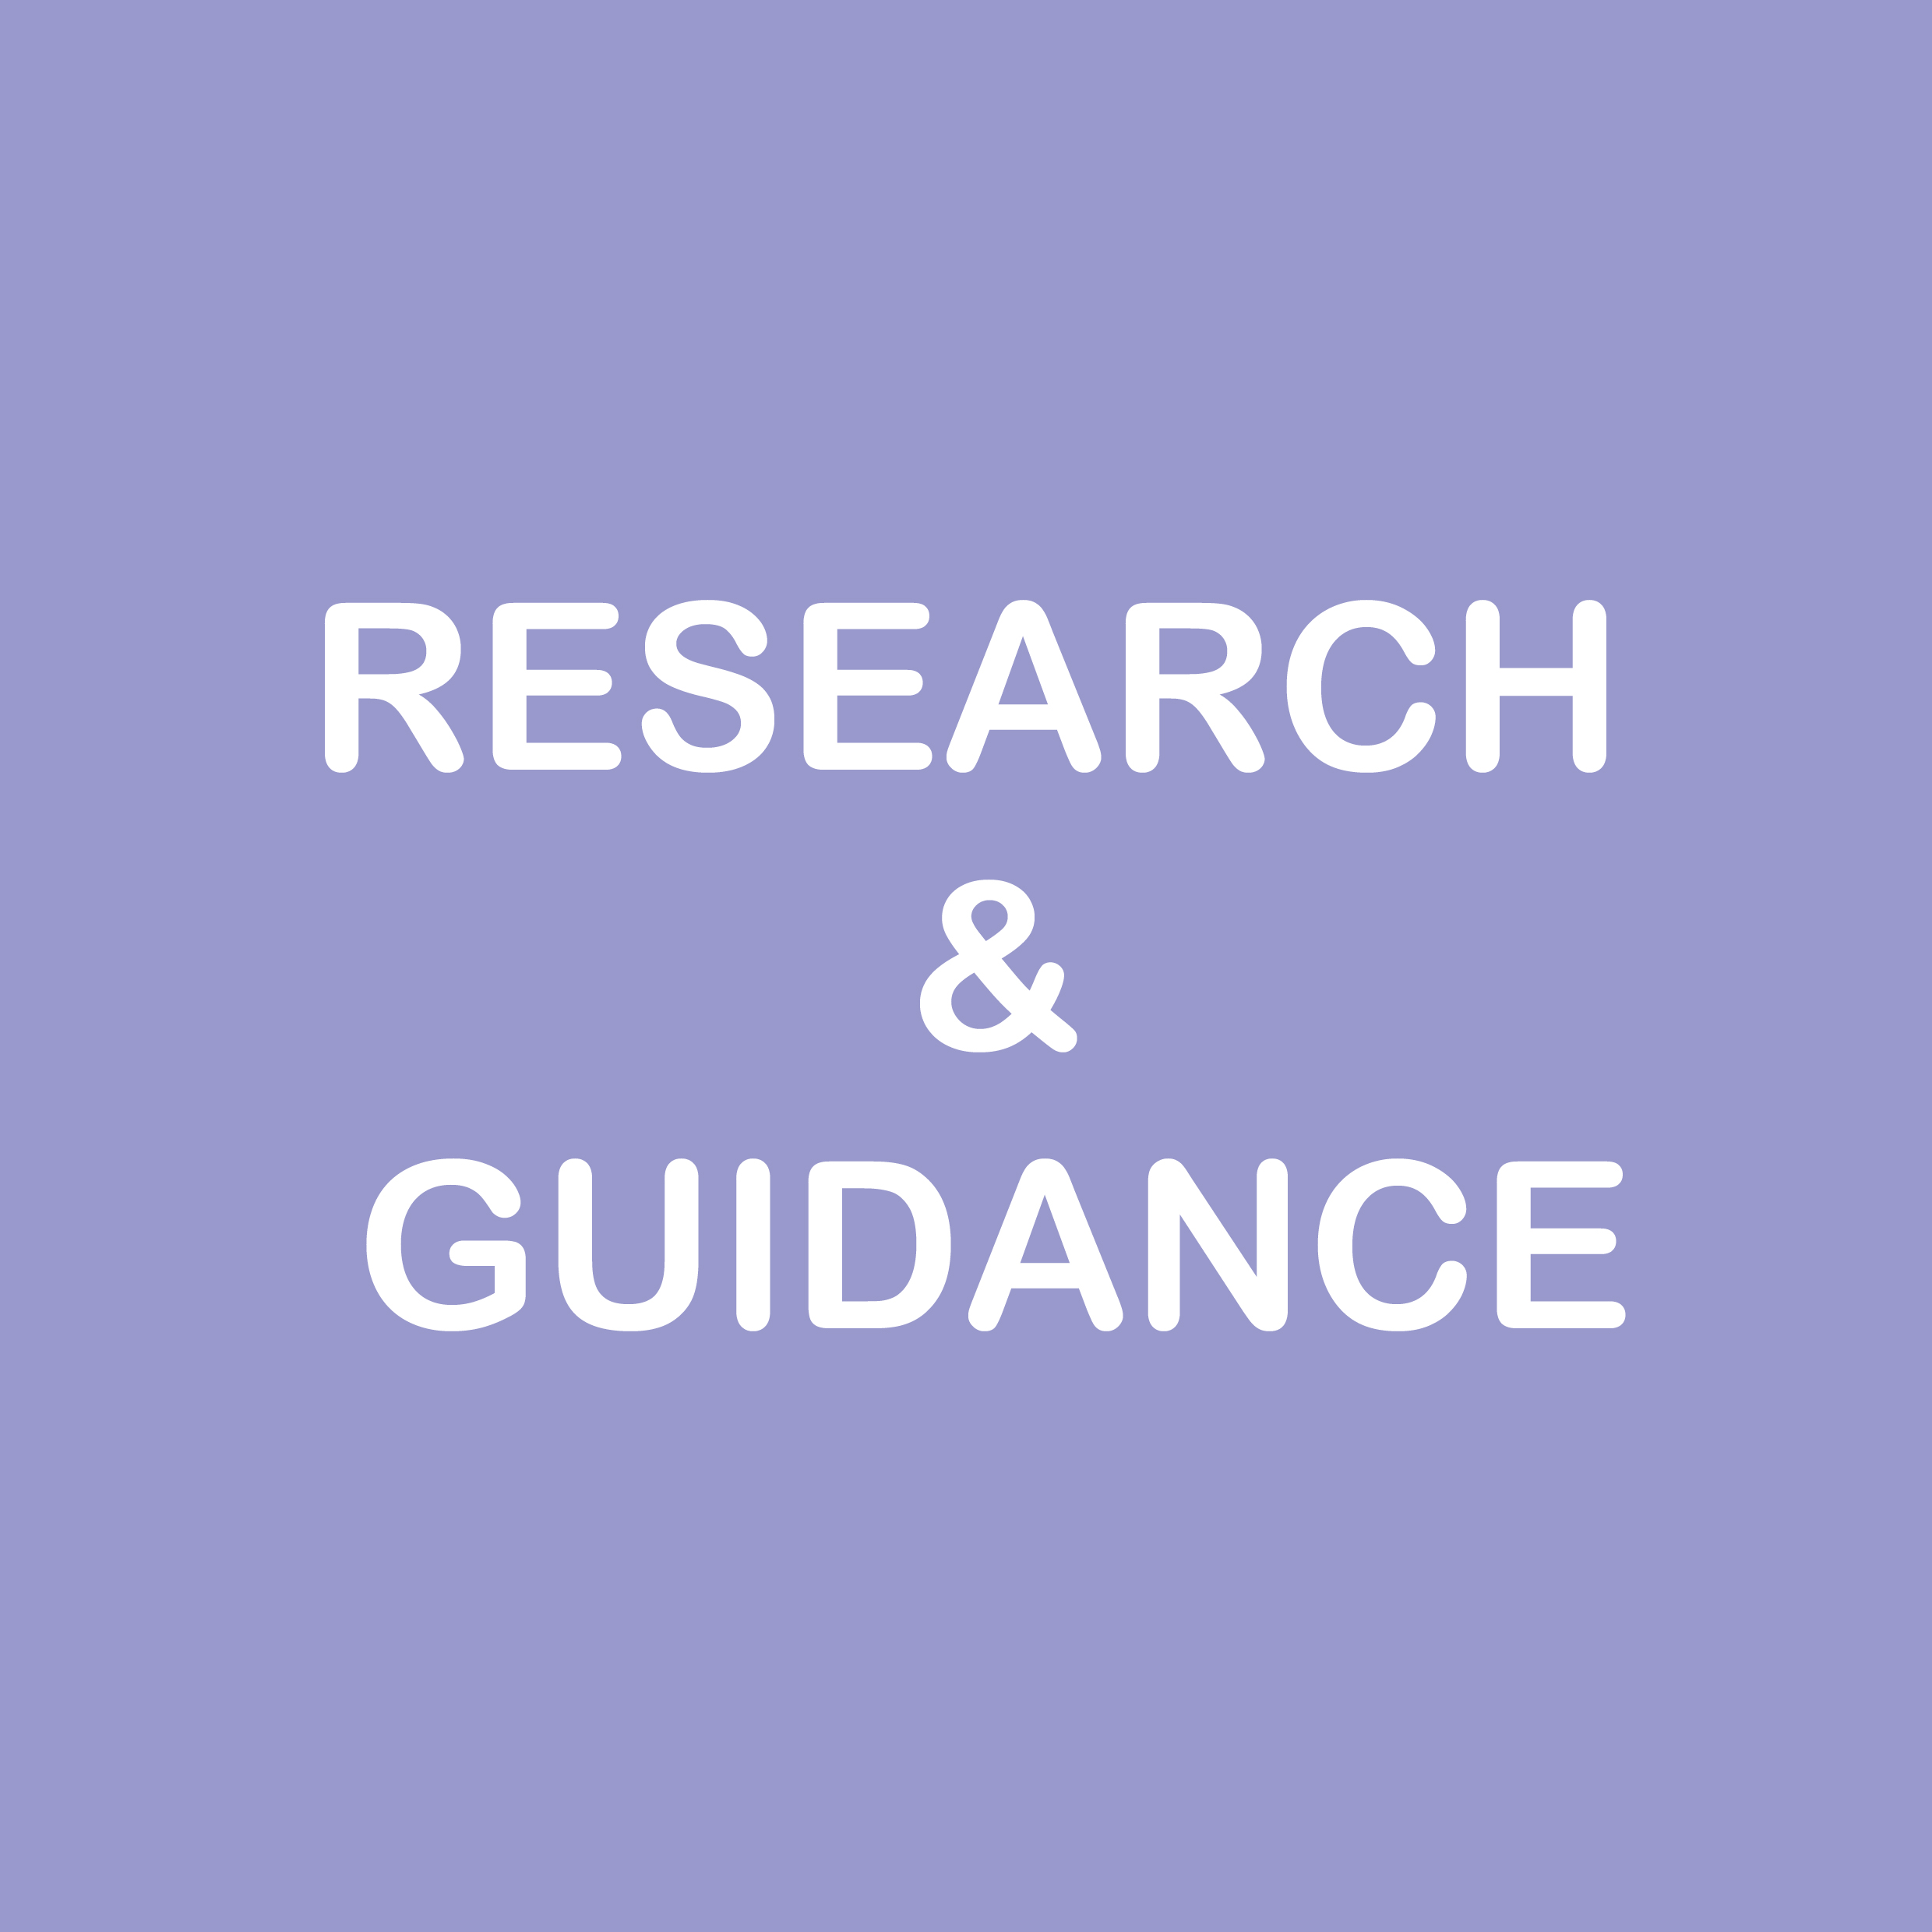 Research & guidance